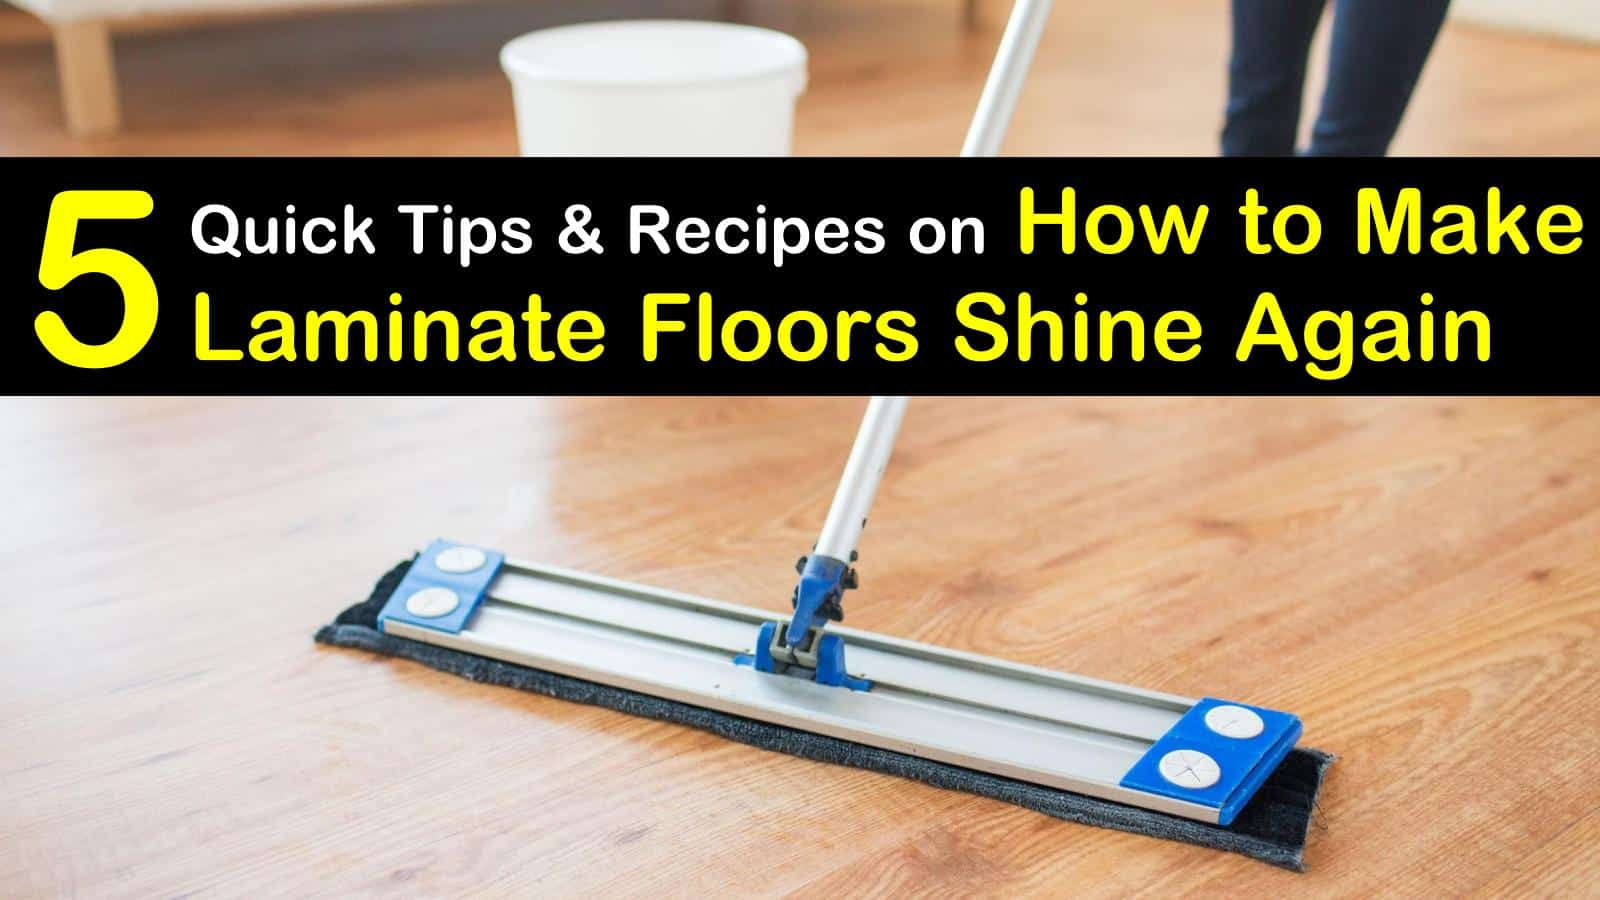 5 Quick Ways To Make Laminate Floors Shine